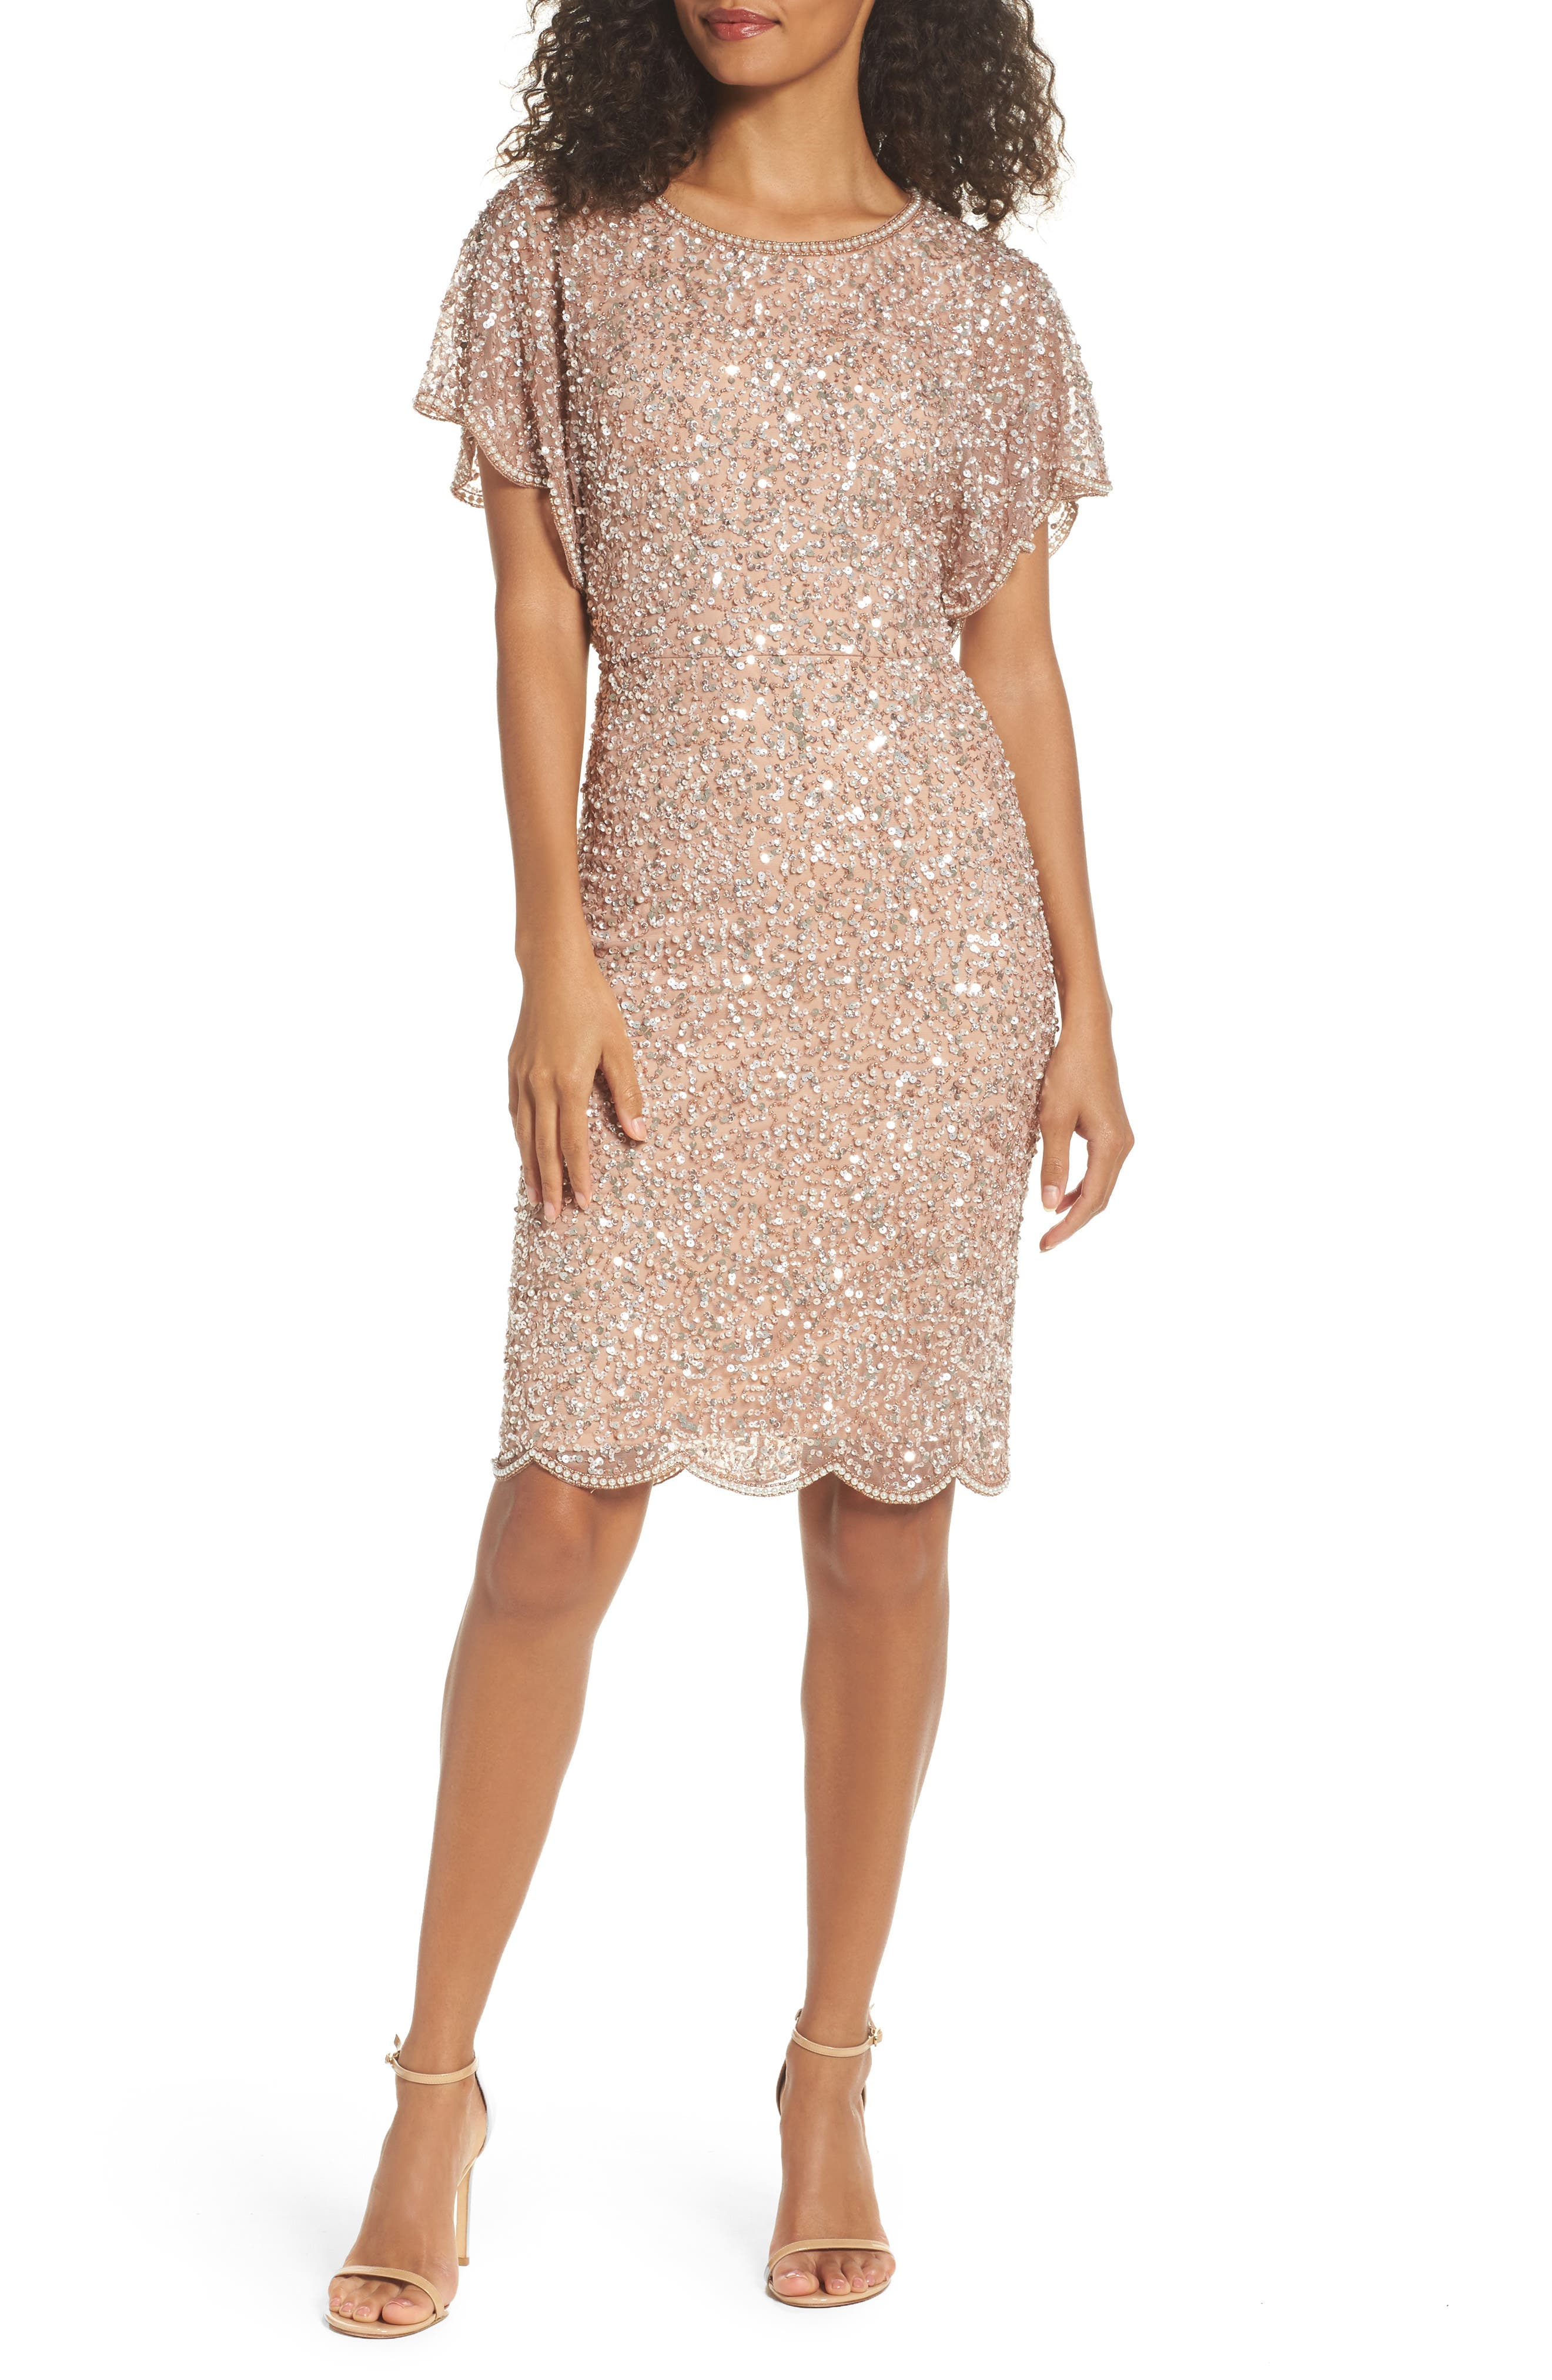 Adrianna papell cocktail dresses for spring